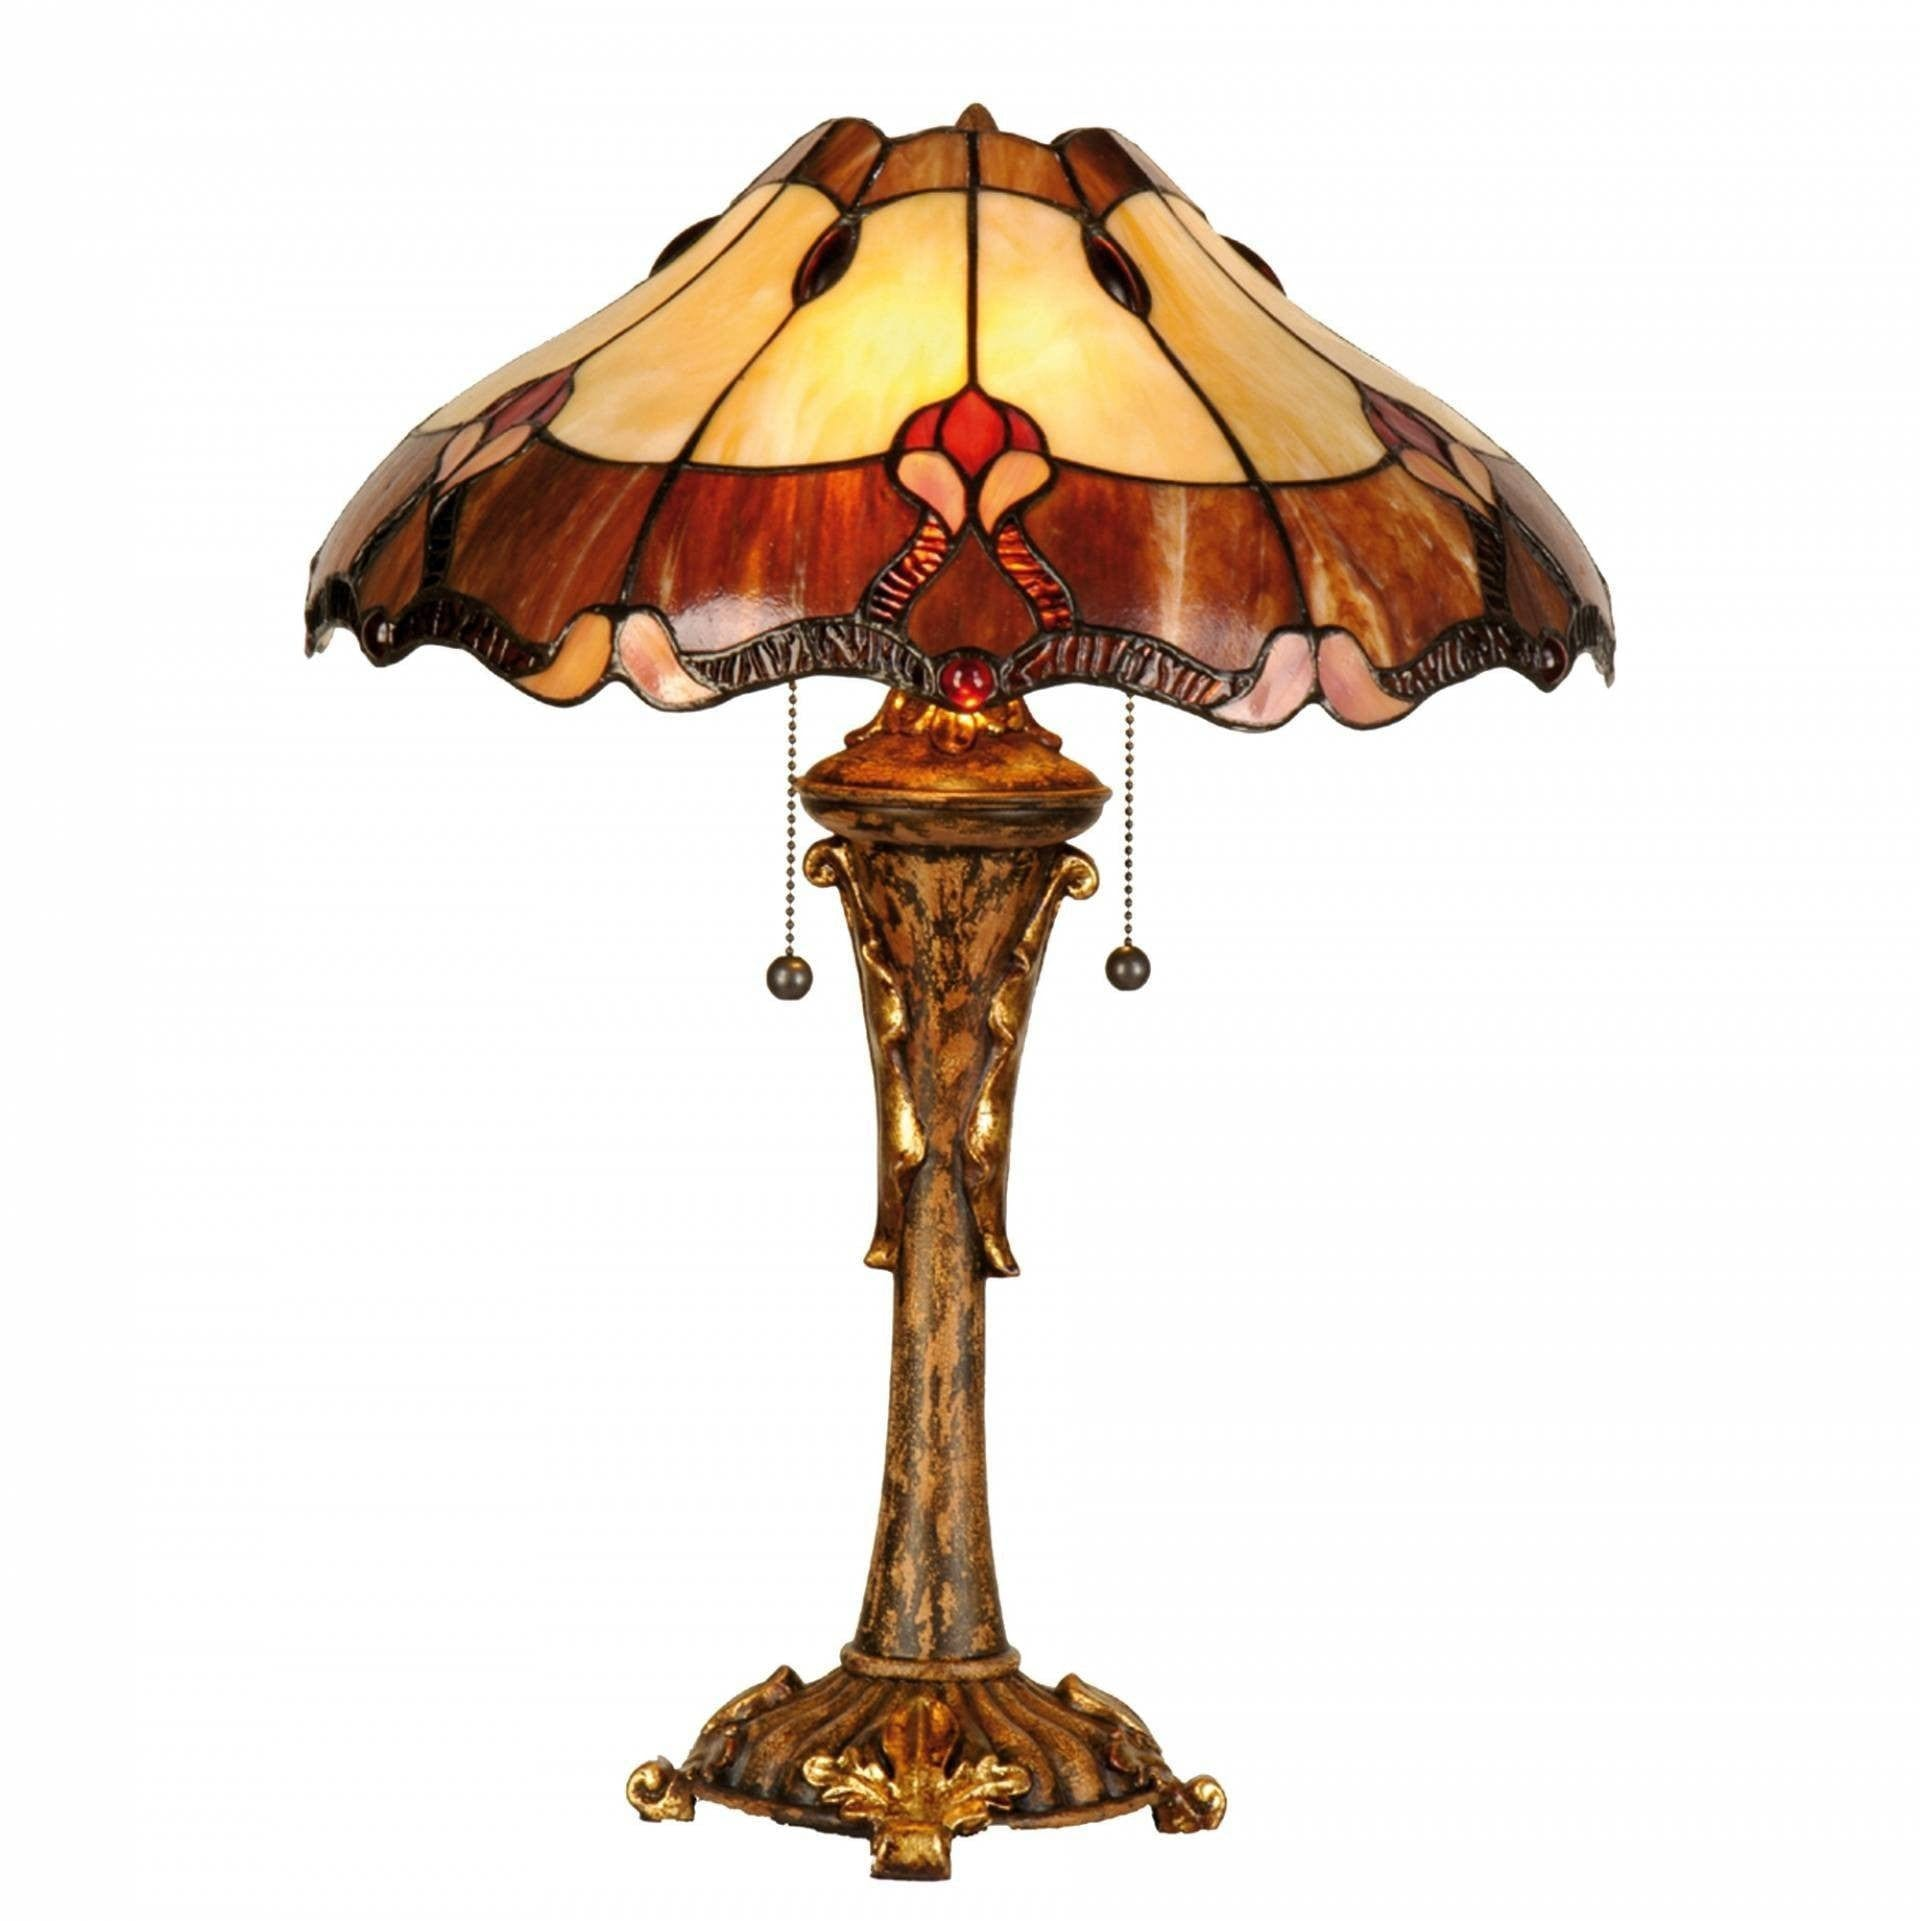 Large Tiffany Lamps - Eastbourne Tiffany Lamp 5377